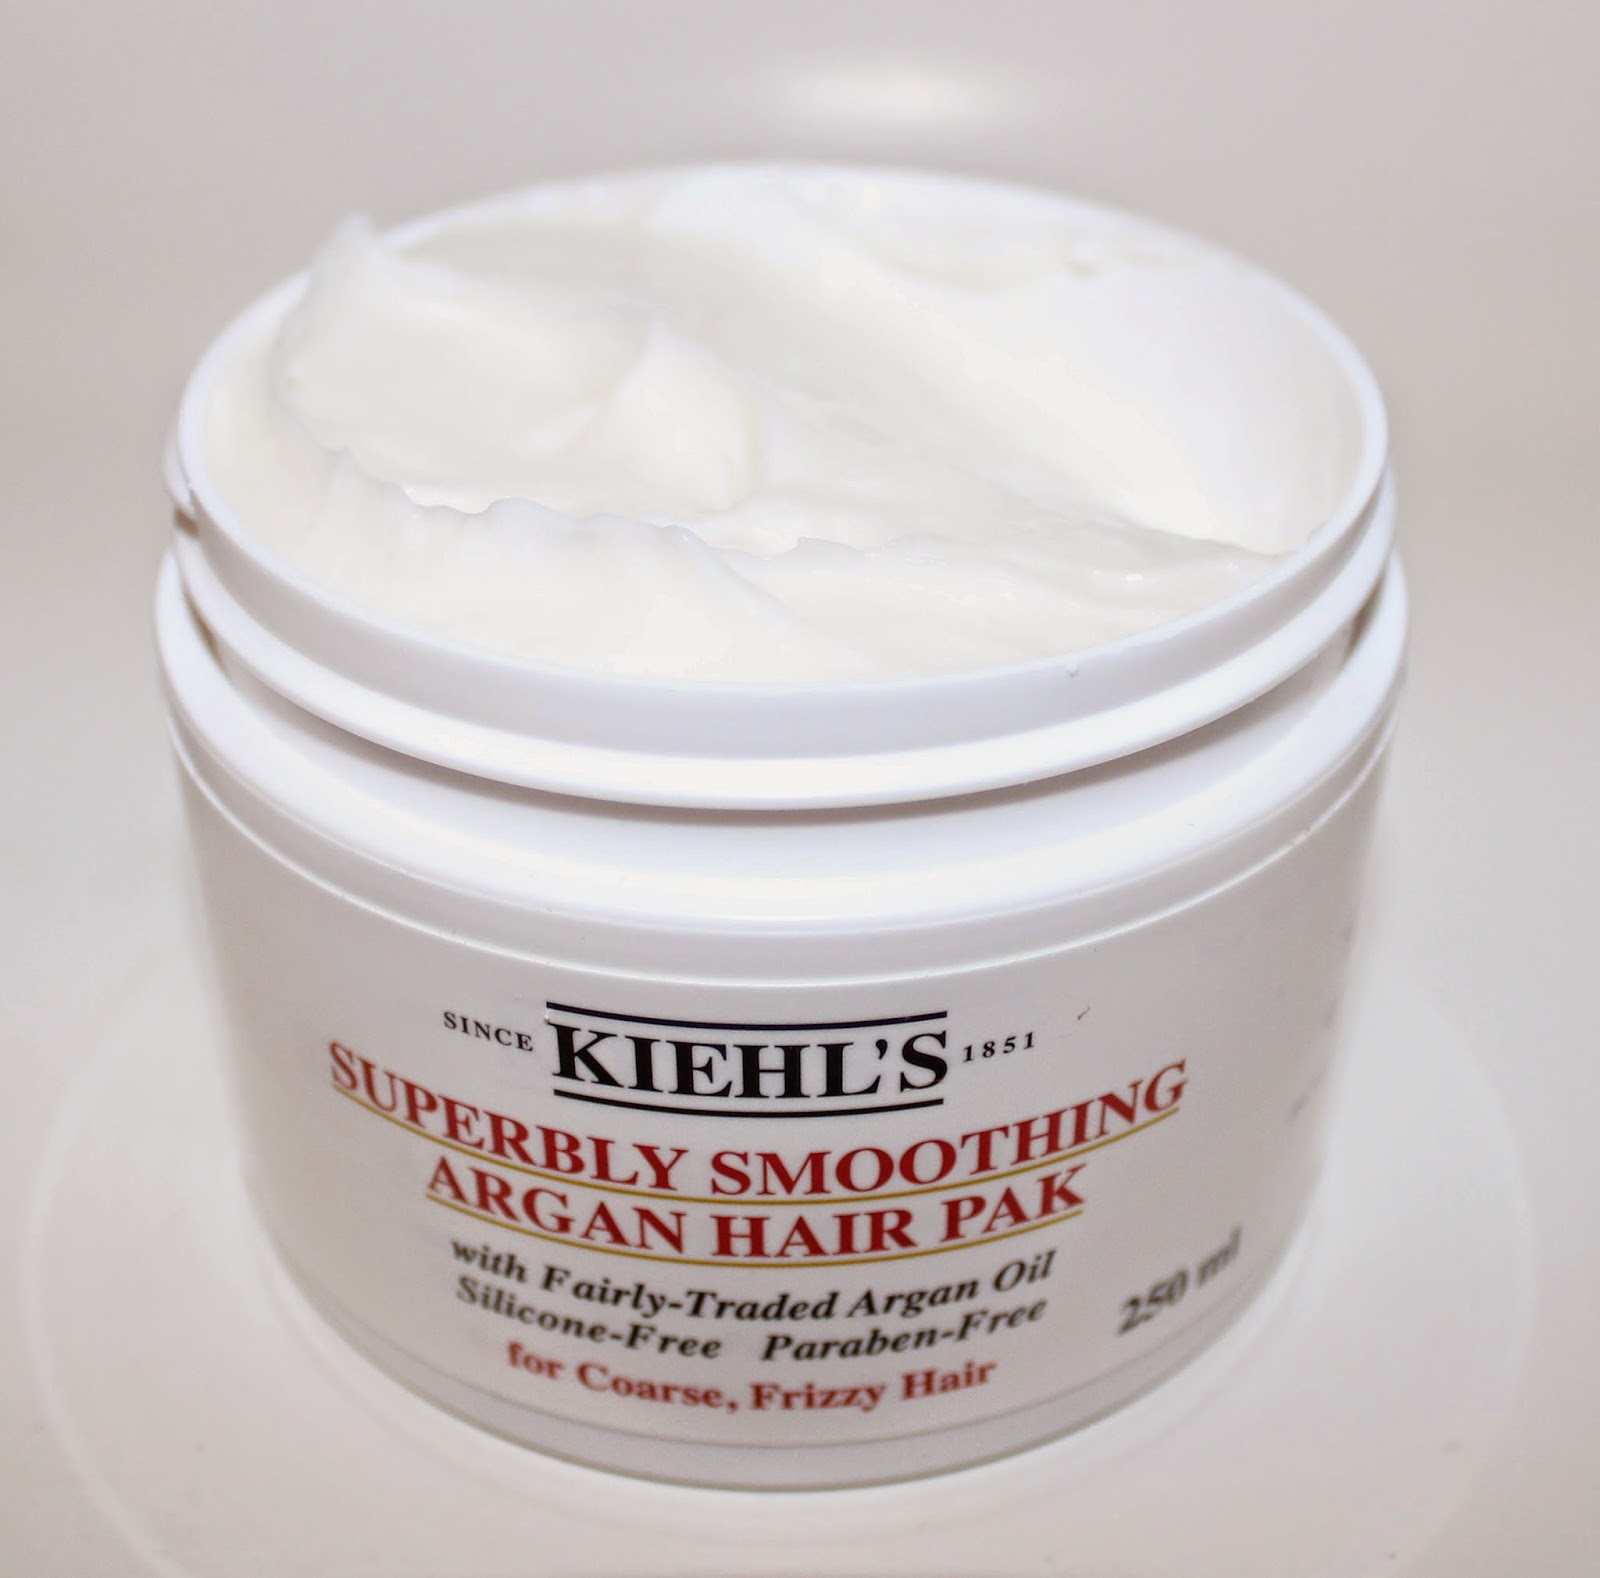 Kiehl's Superbly Smoothing Argan Hair Pak